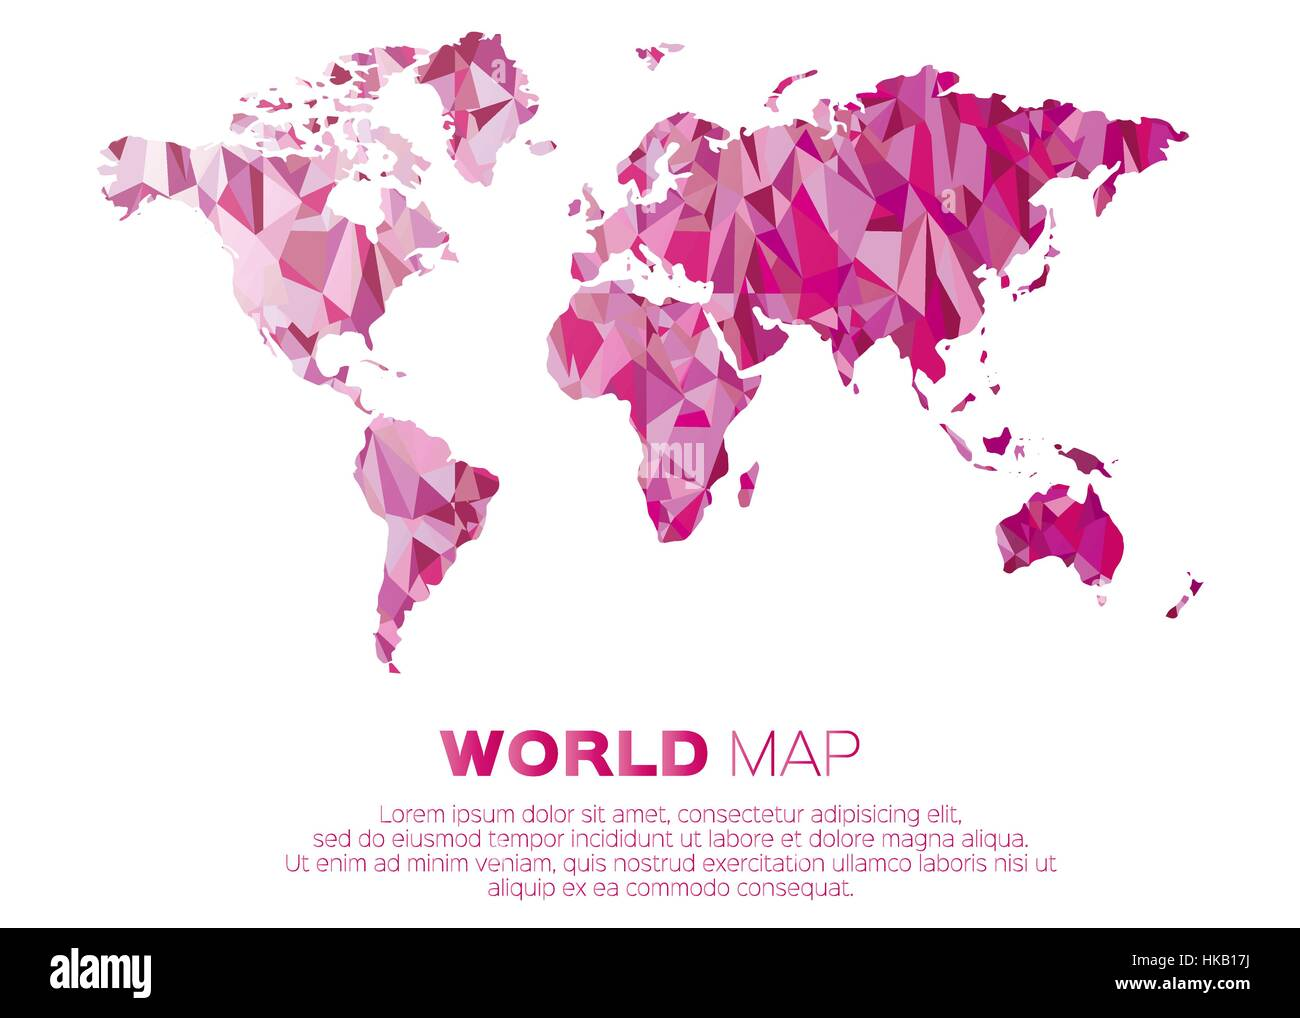 World map background in polygonal style Abstract origami color map